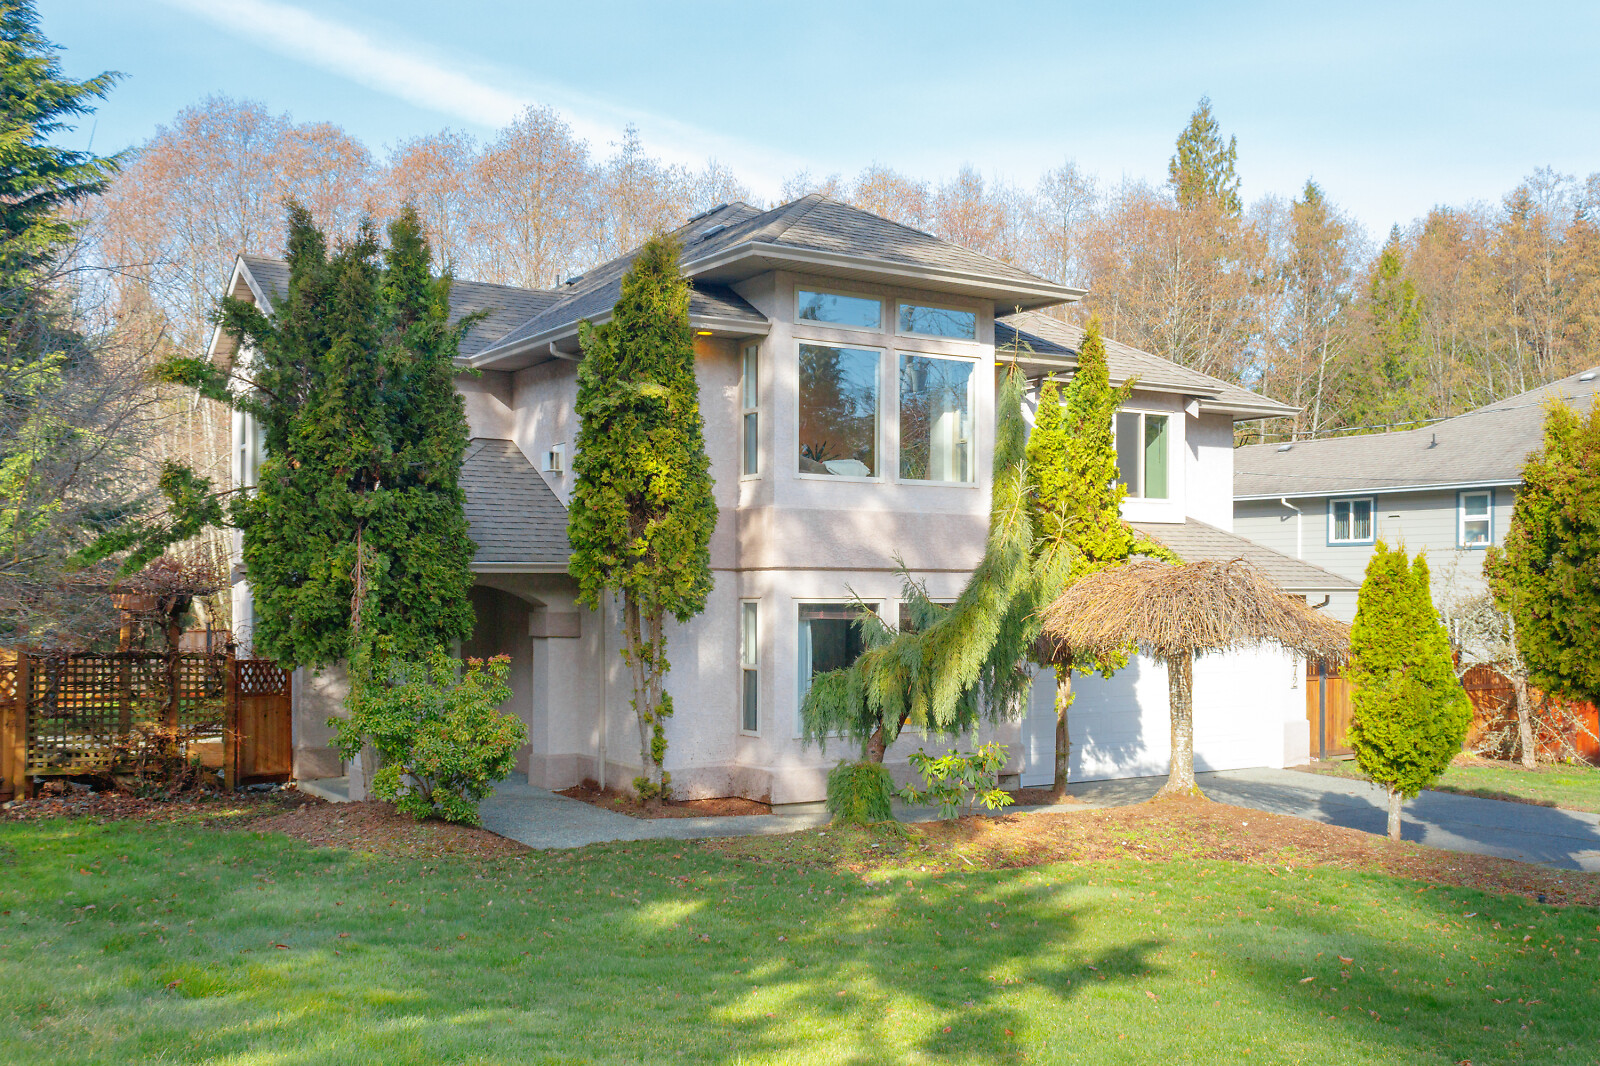 2472 Fawn Terr, mill bay, British Columbia